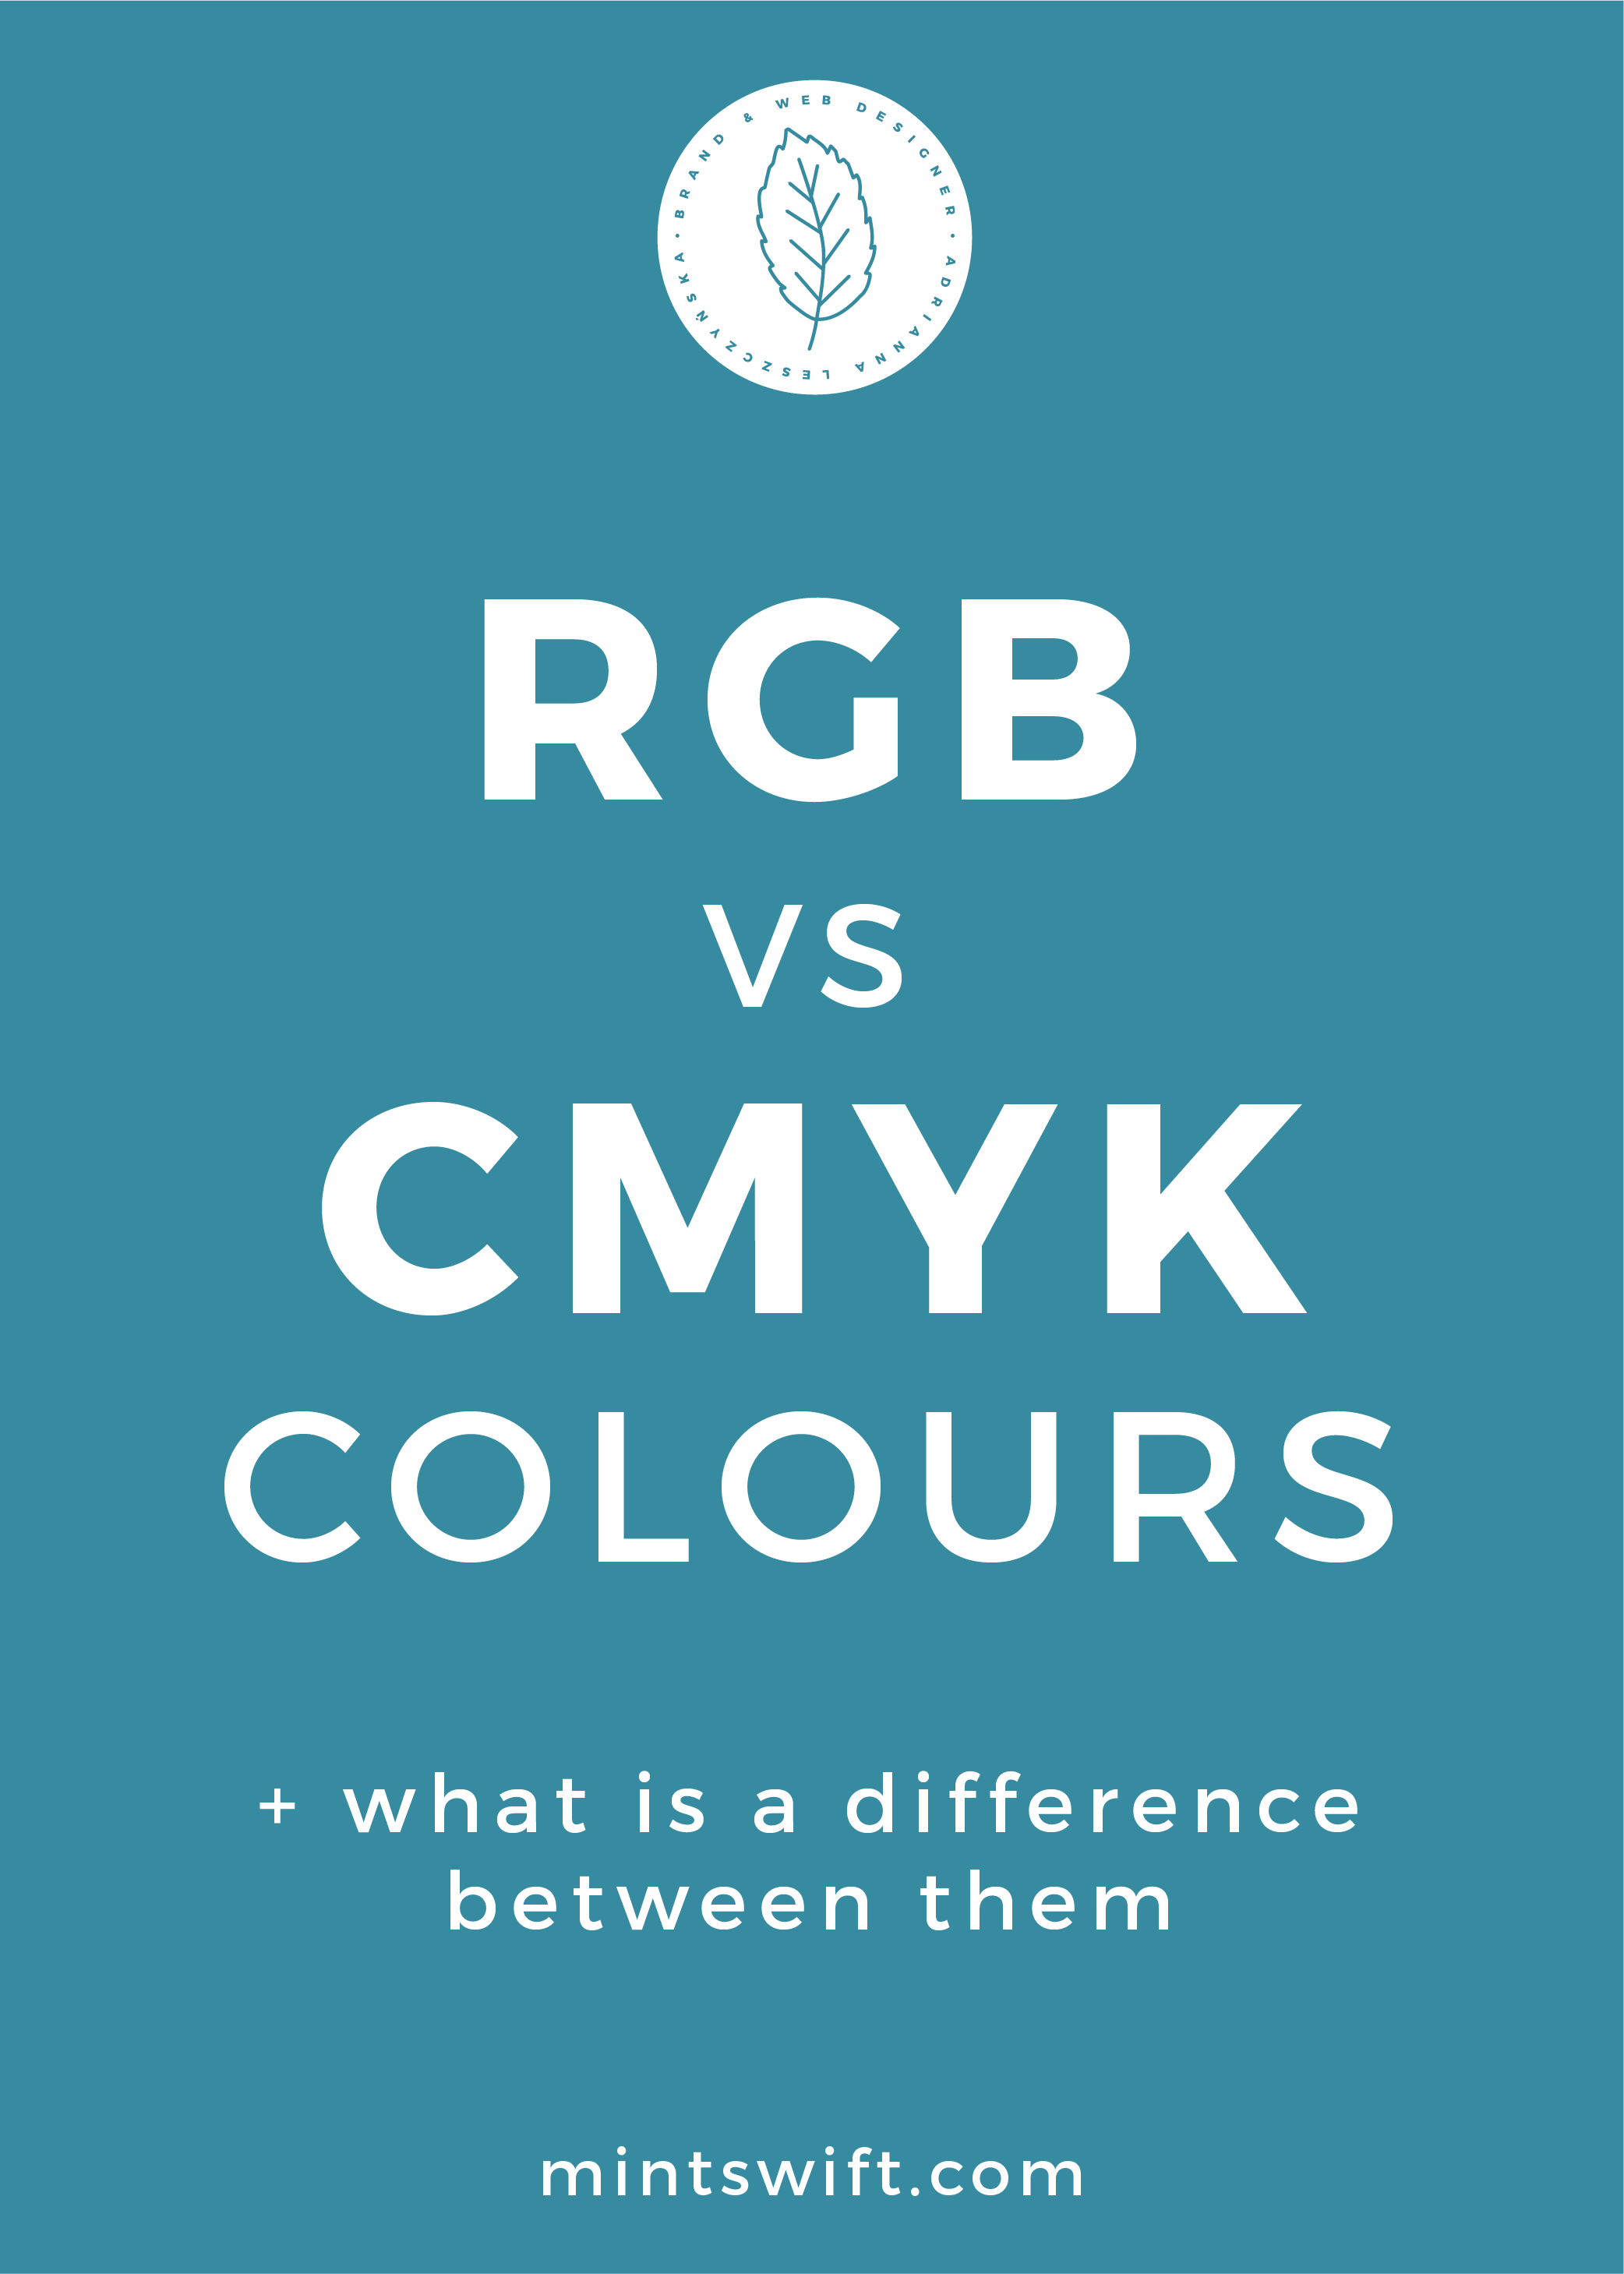 RGB vs CMYK Colours + What is a Difference Between Them - MintSwift